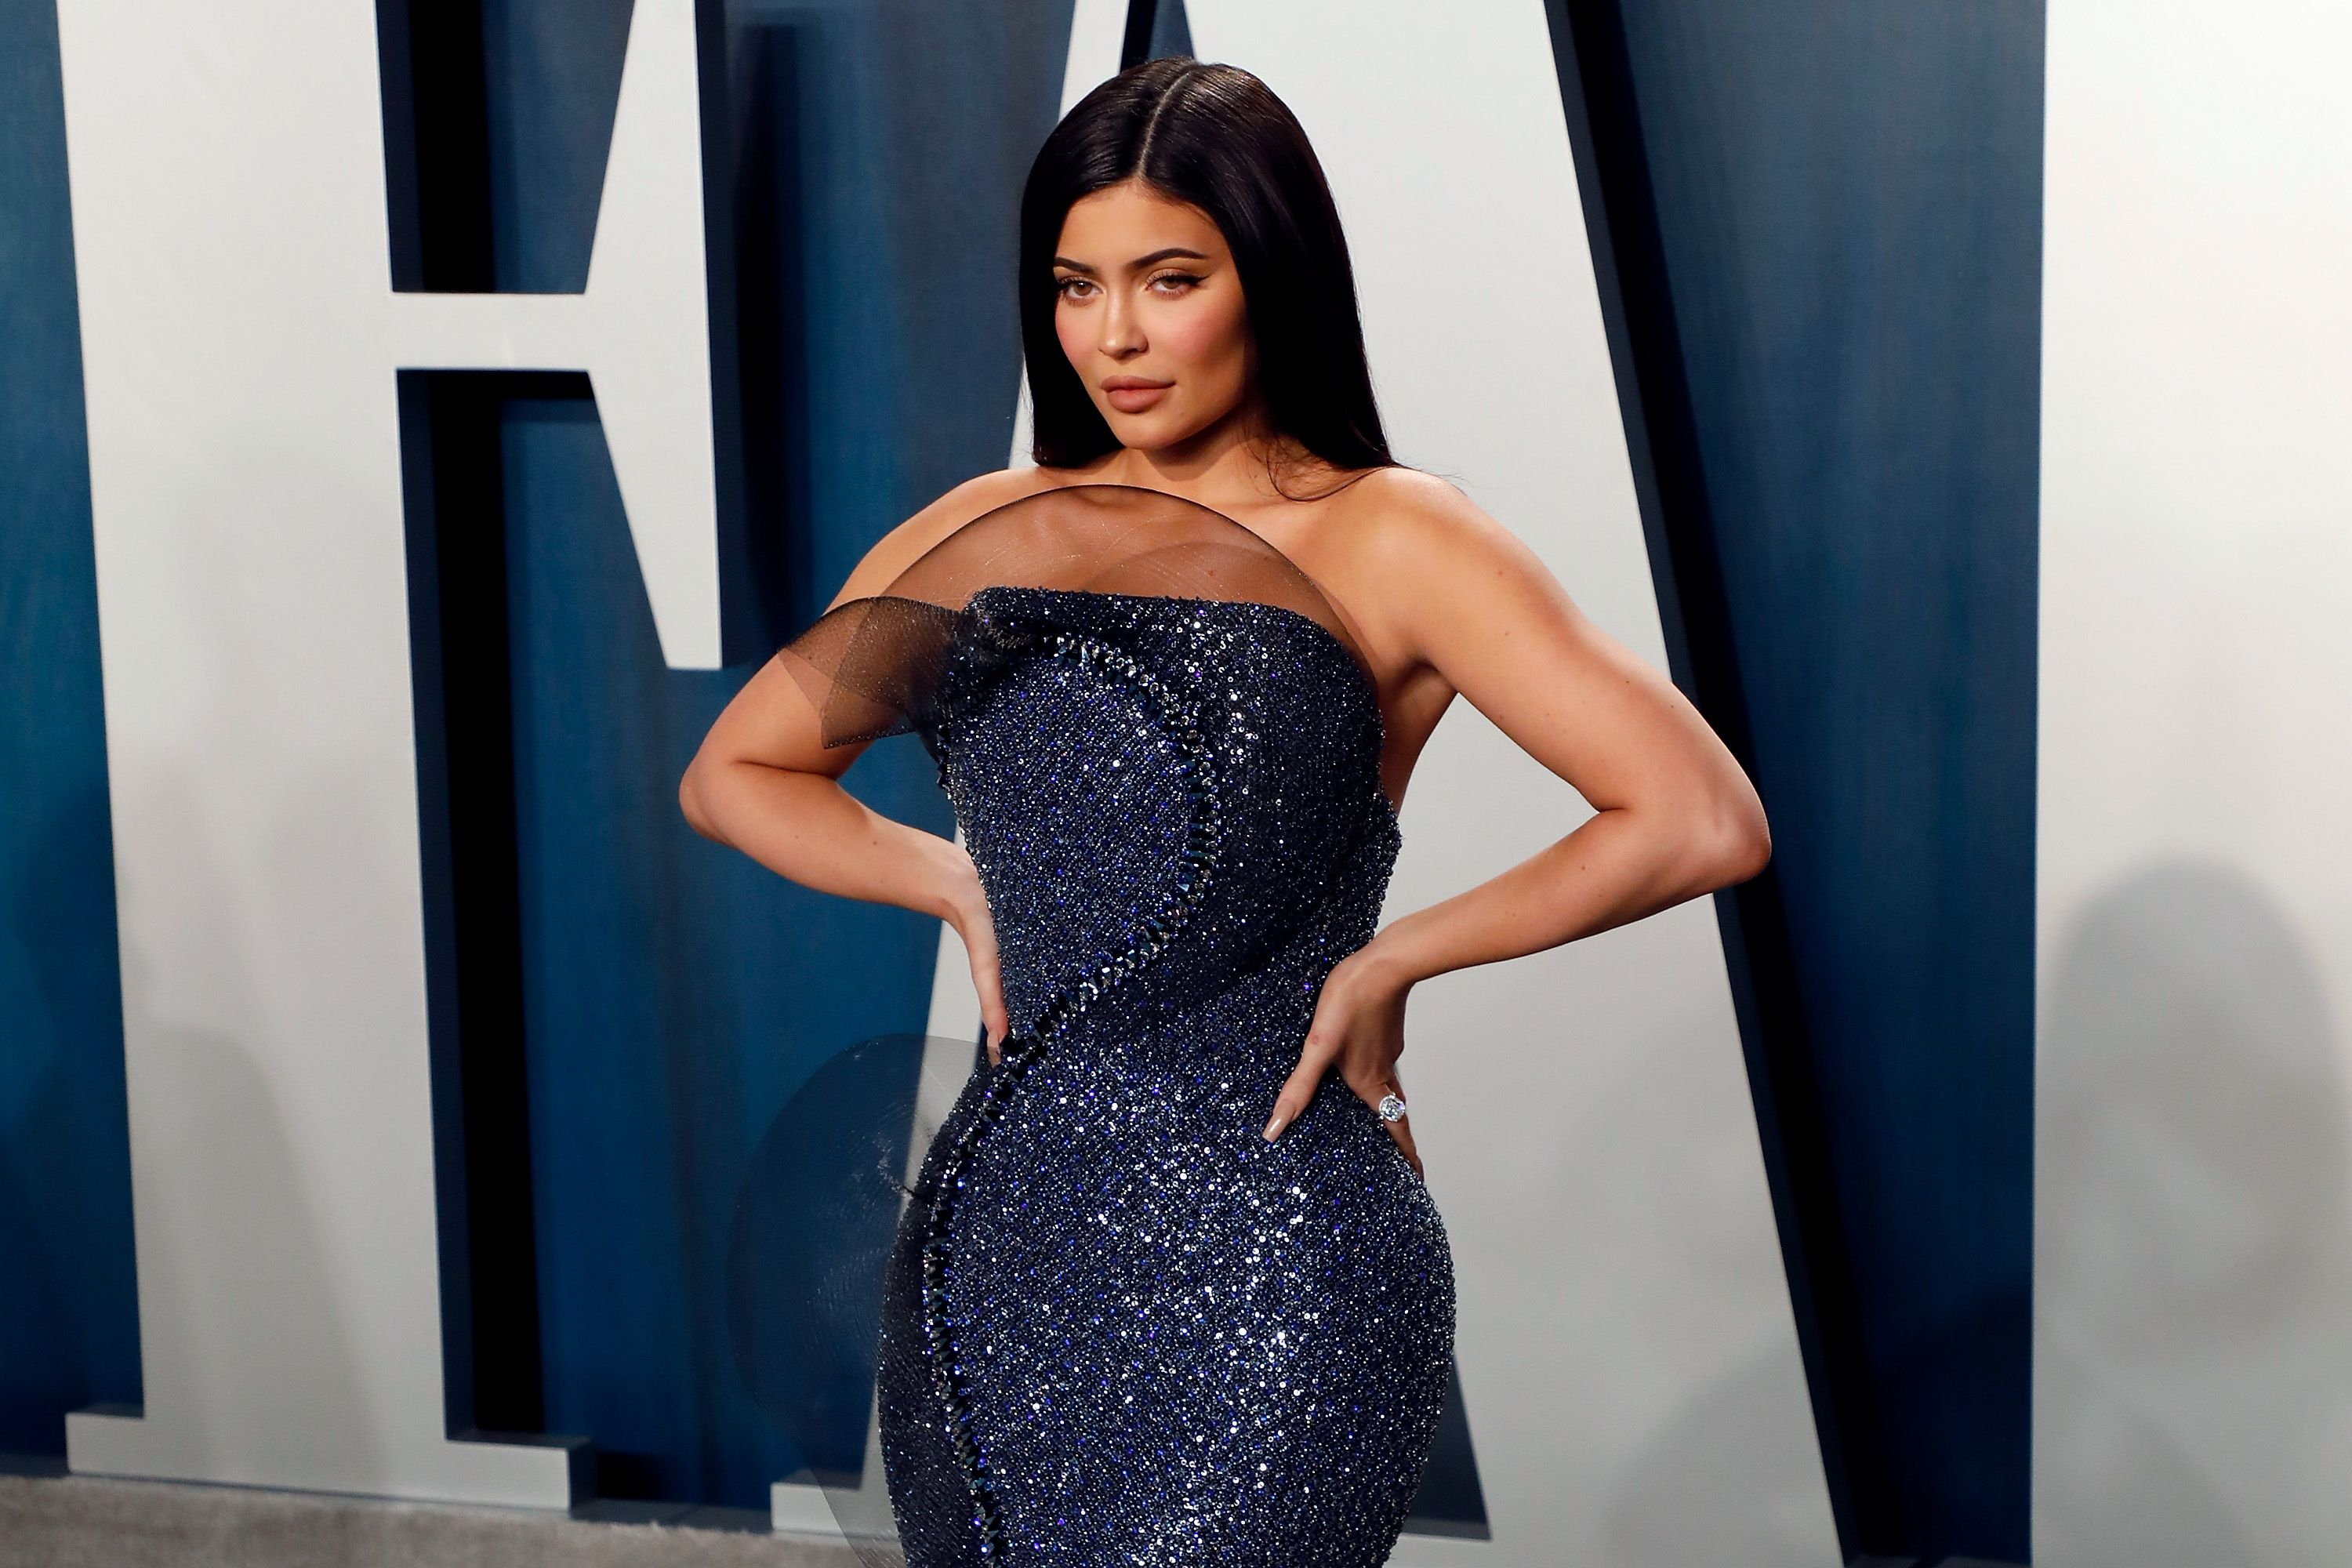 Kylie Jenner Wears Navy Dress At The Vanity Fair Oscar After Party In 2020